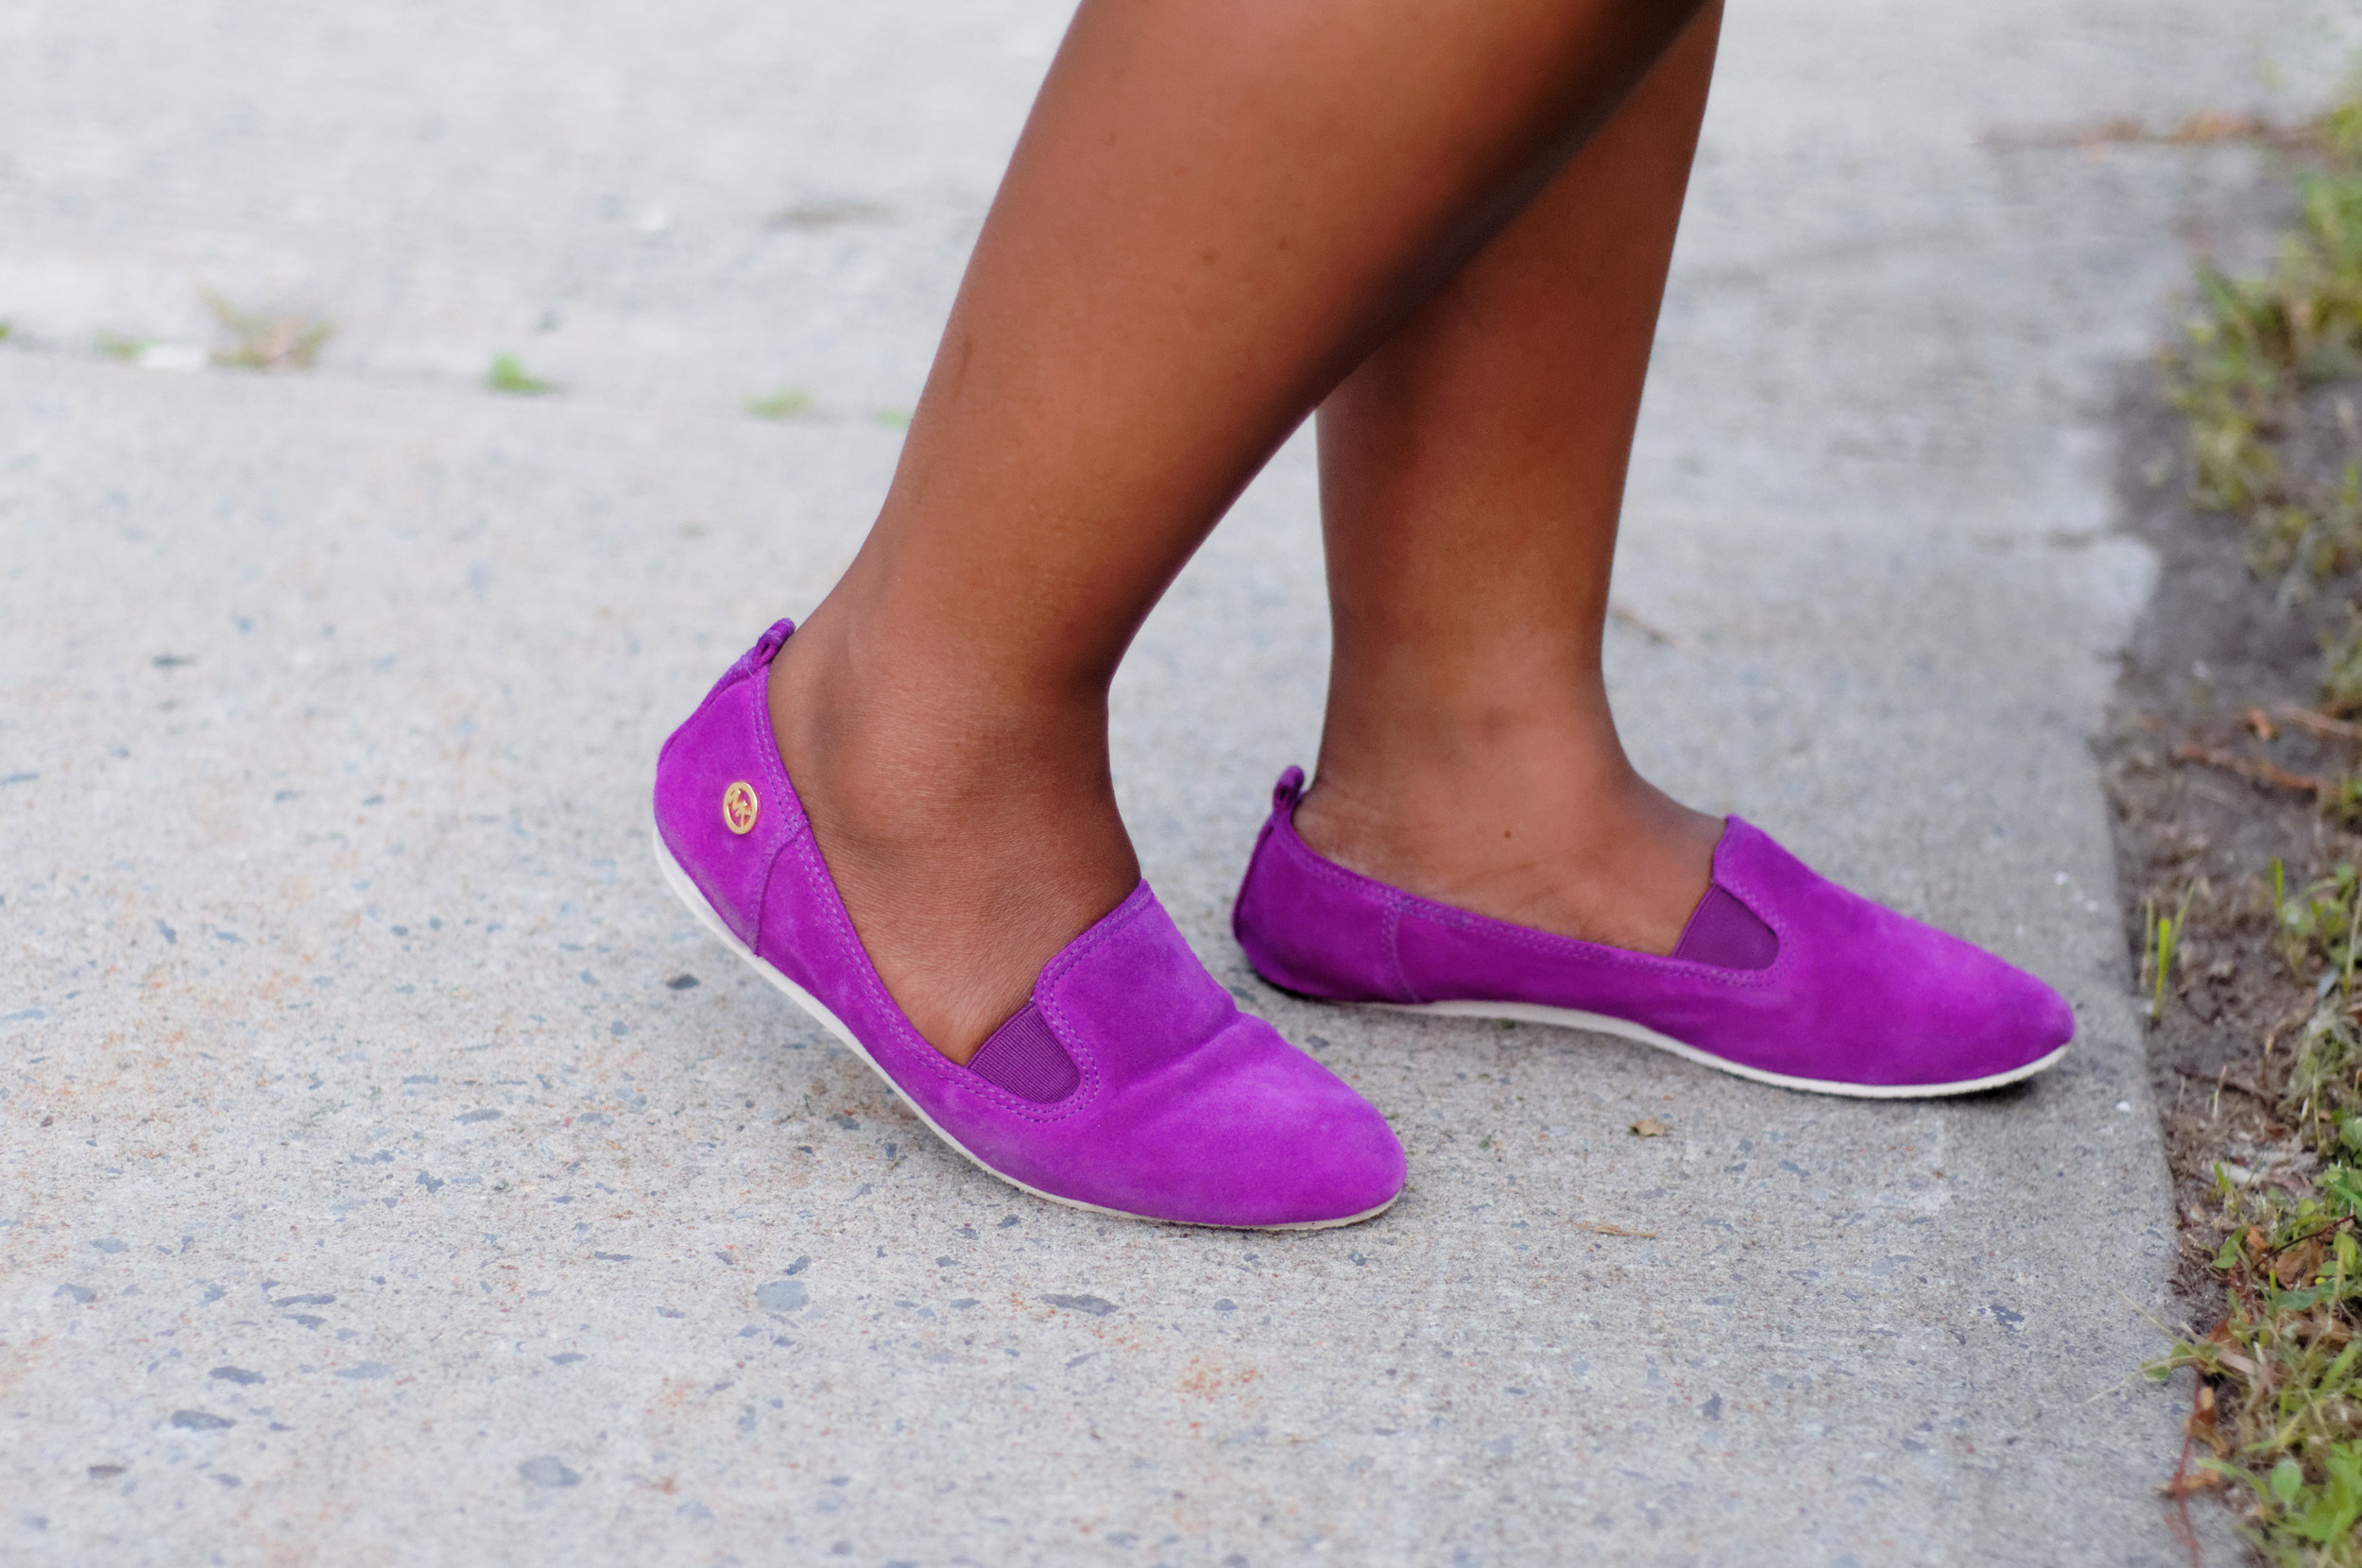 Michael Kors Purple Loafers